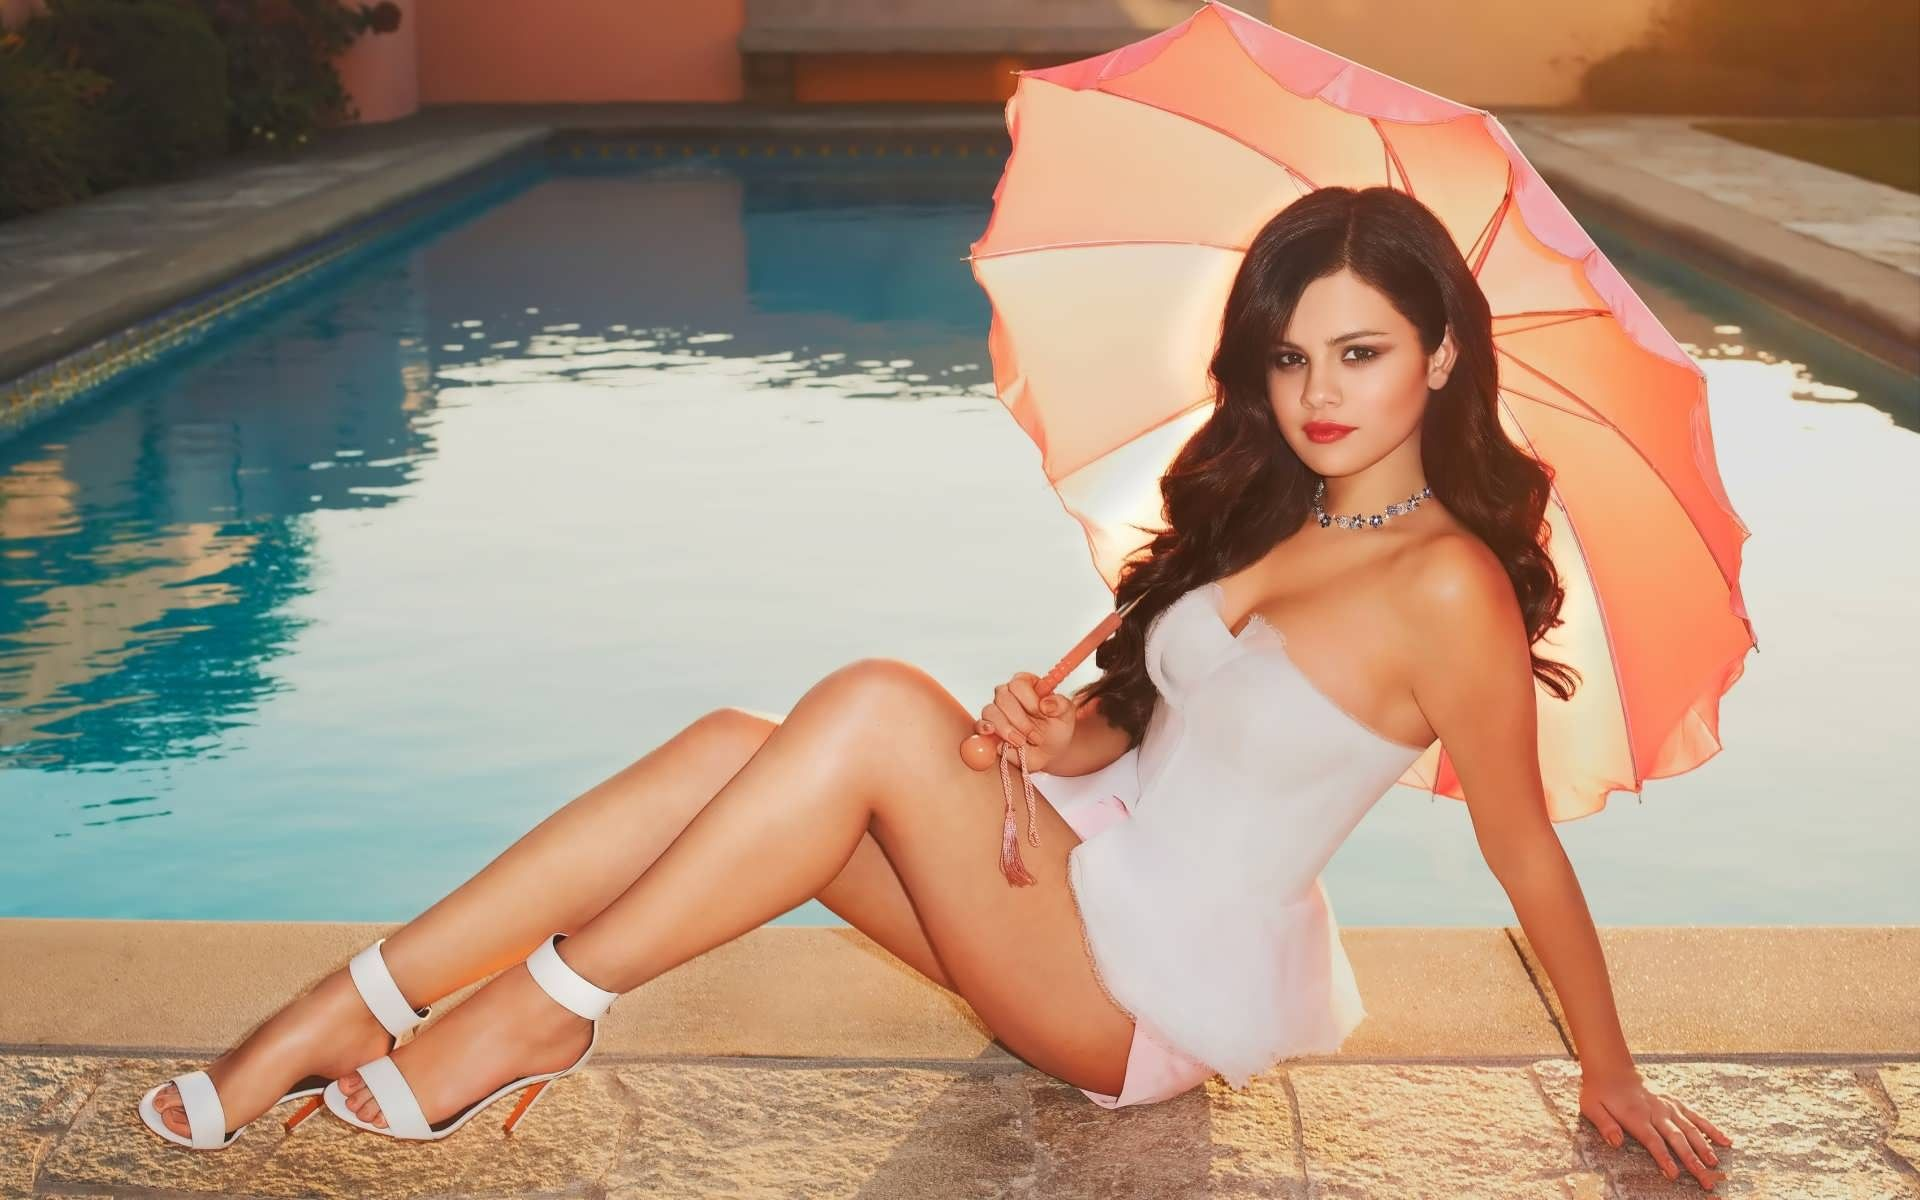 gorgeous selena gomez wallpapers collectin in hd 1080p | celebrity